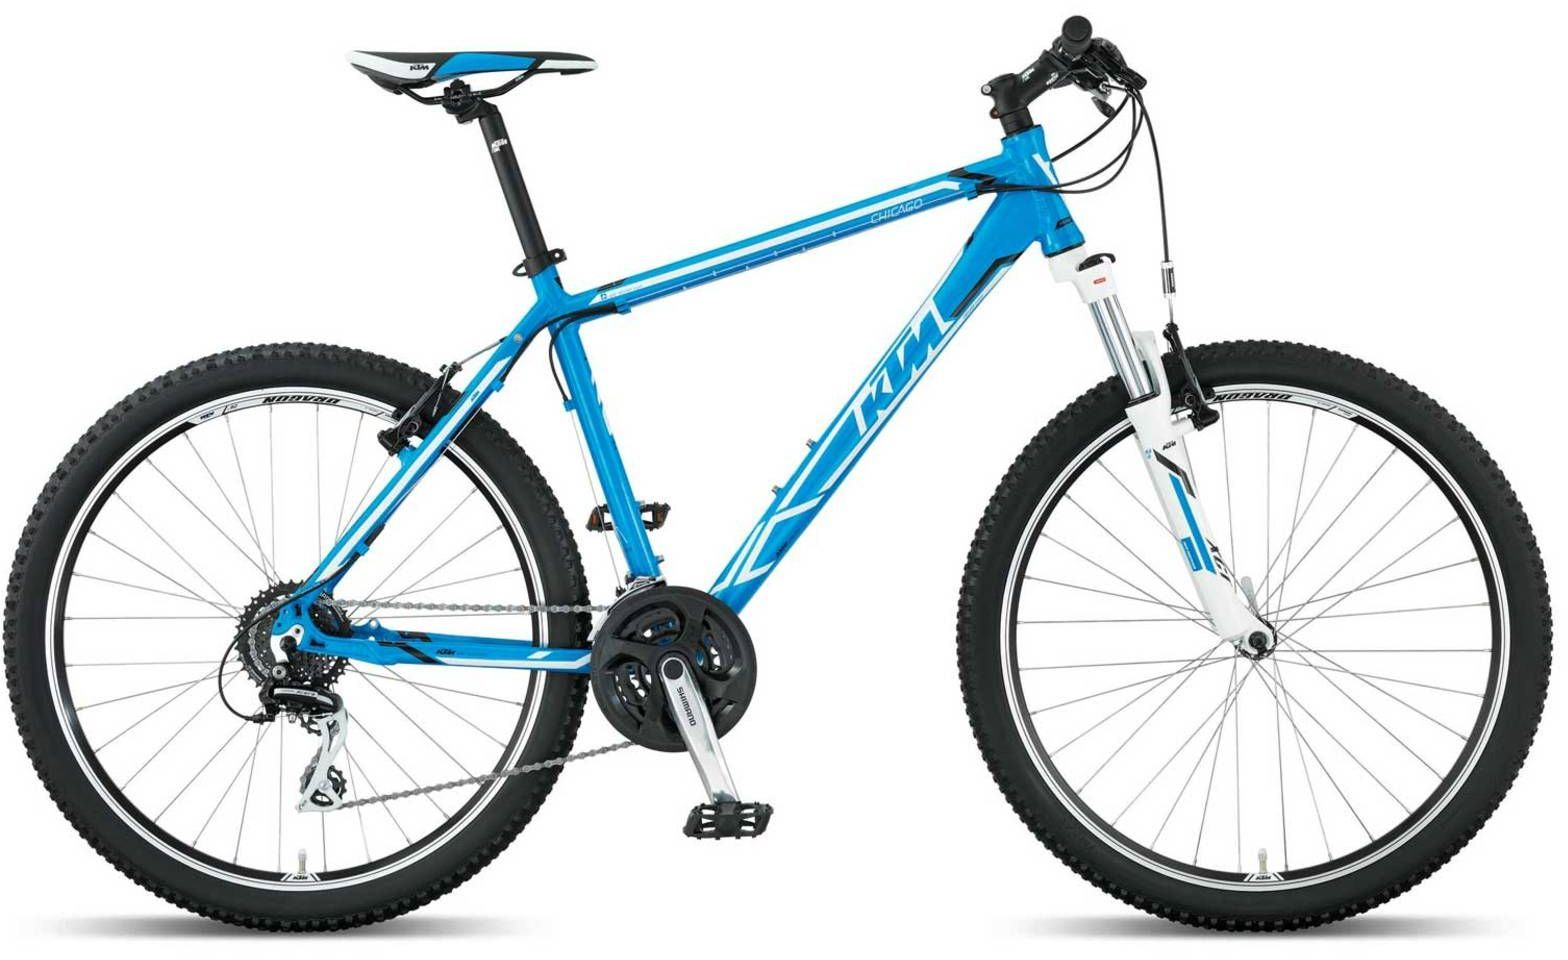 Ktm Chicago 26 Classic 2014 Review The Bike List